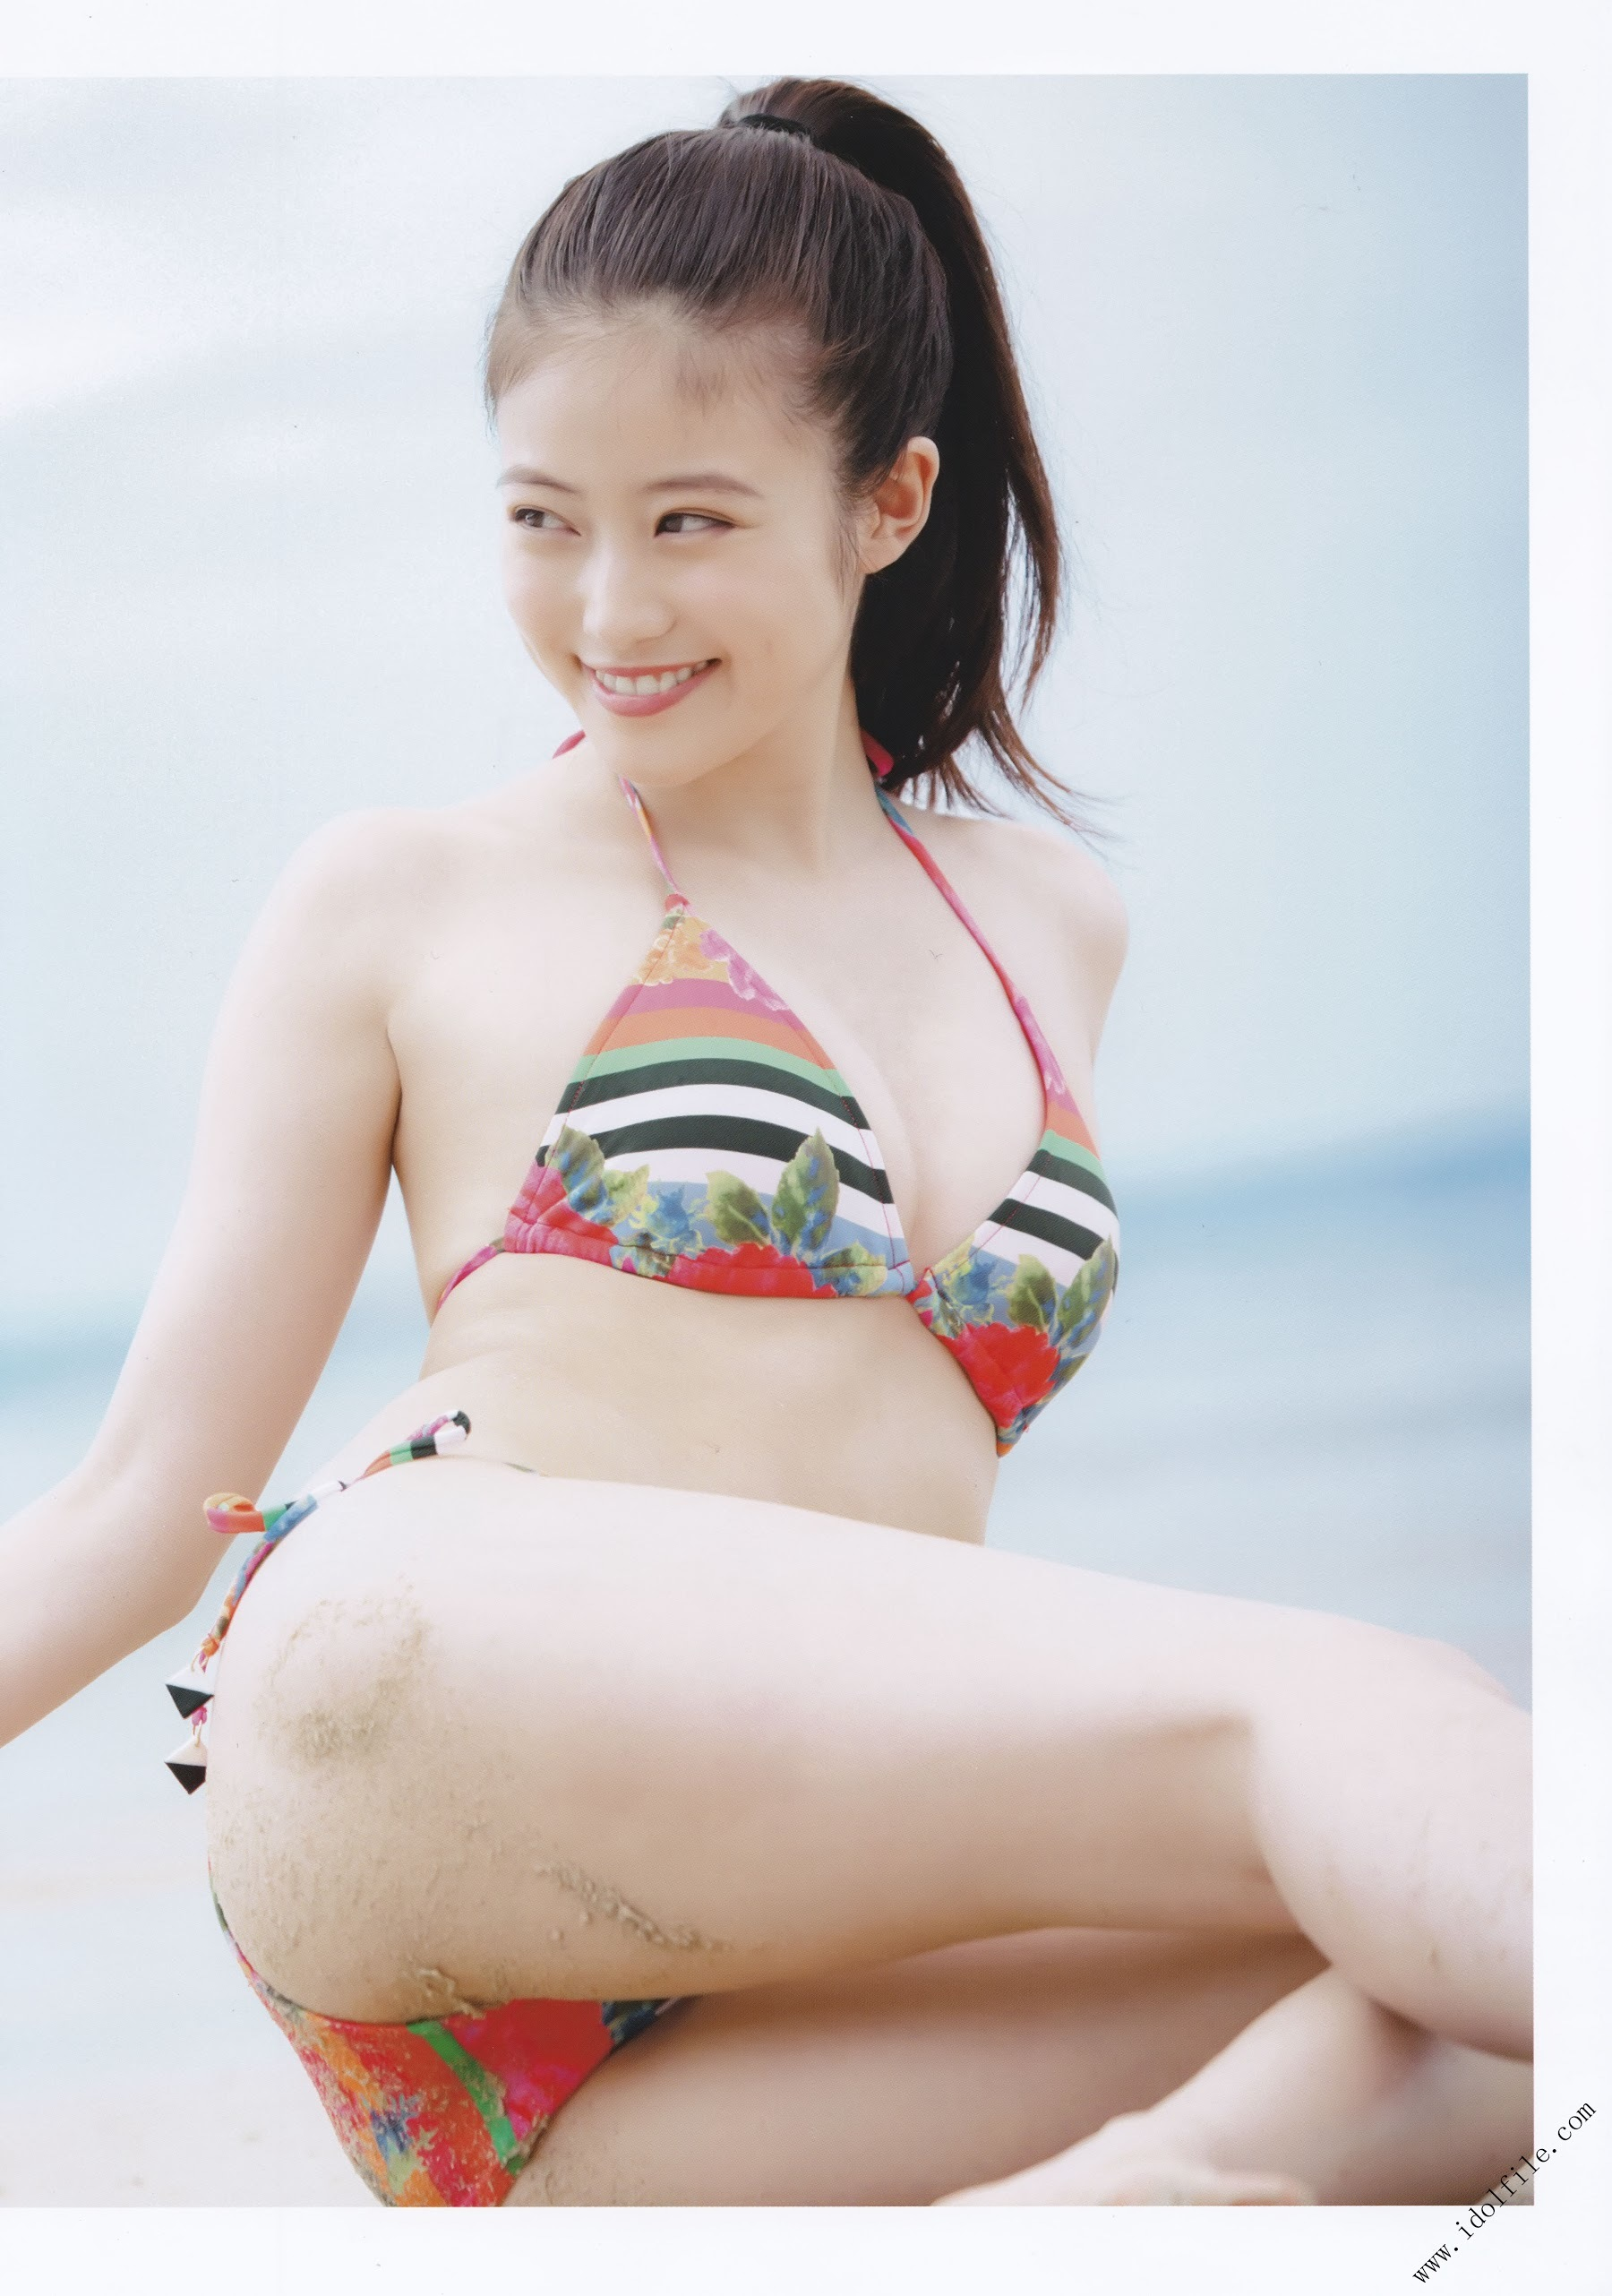 Pretty and beautiful, 22 years old and innocent Moving to the next stage as an actress Mio Imada094